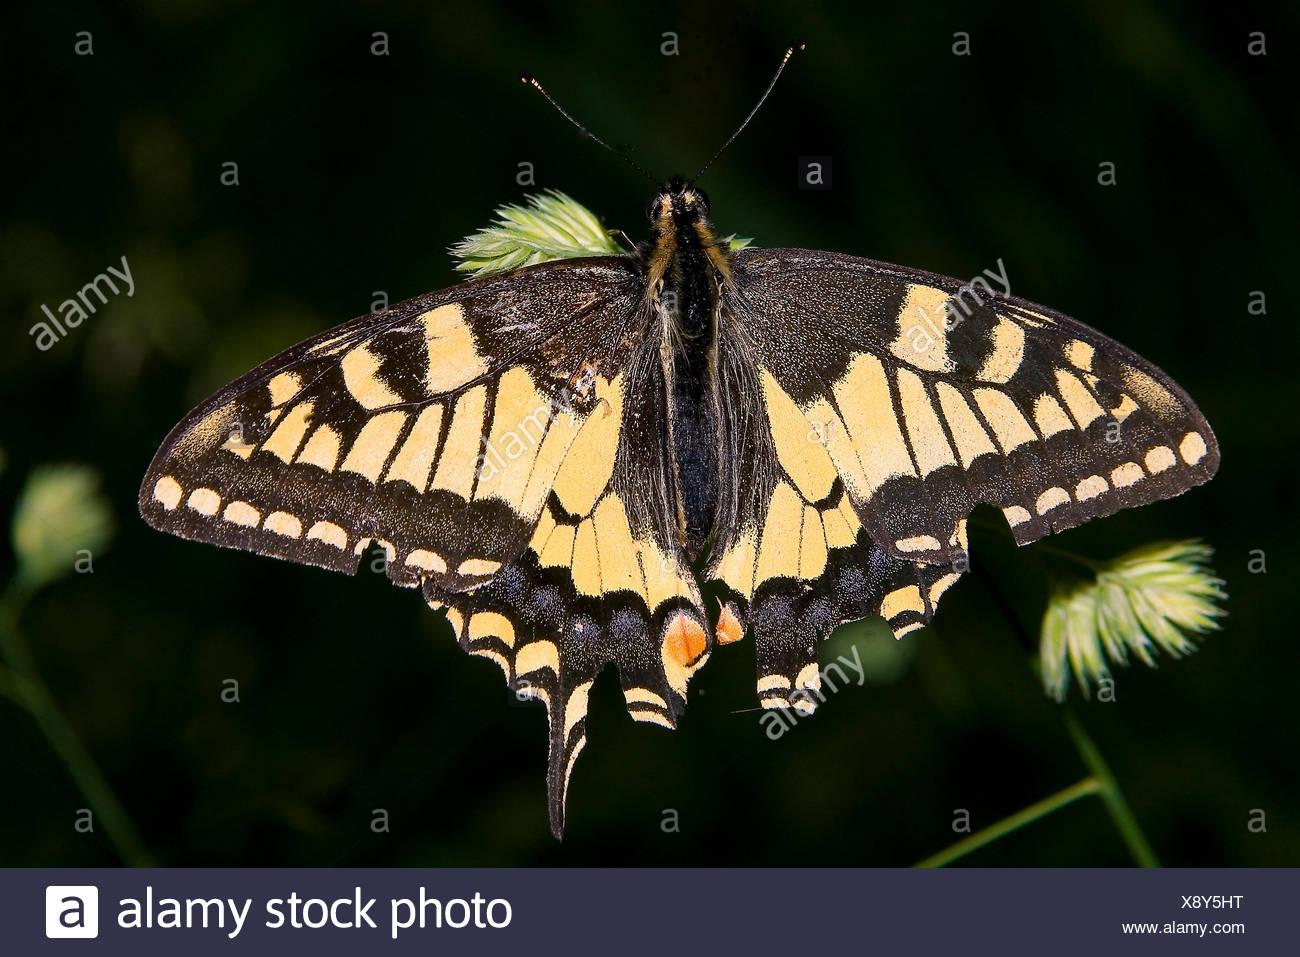 insect butterfly swallowtail edelfalter tagfalter lepidoptera papillione - Stock Image